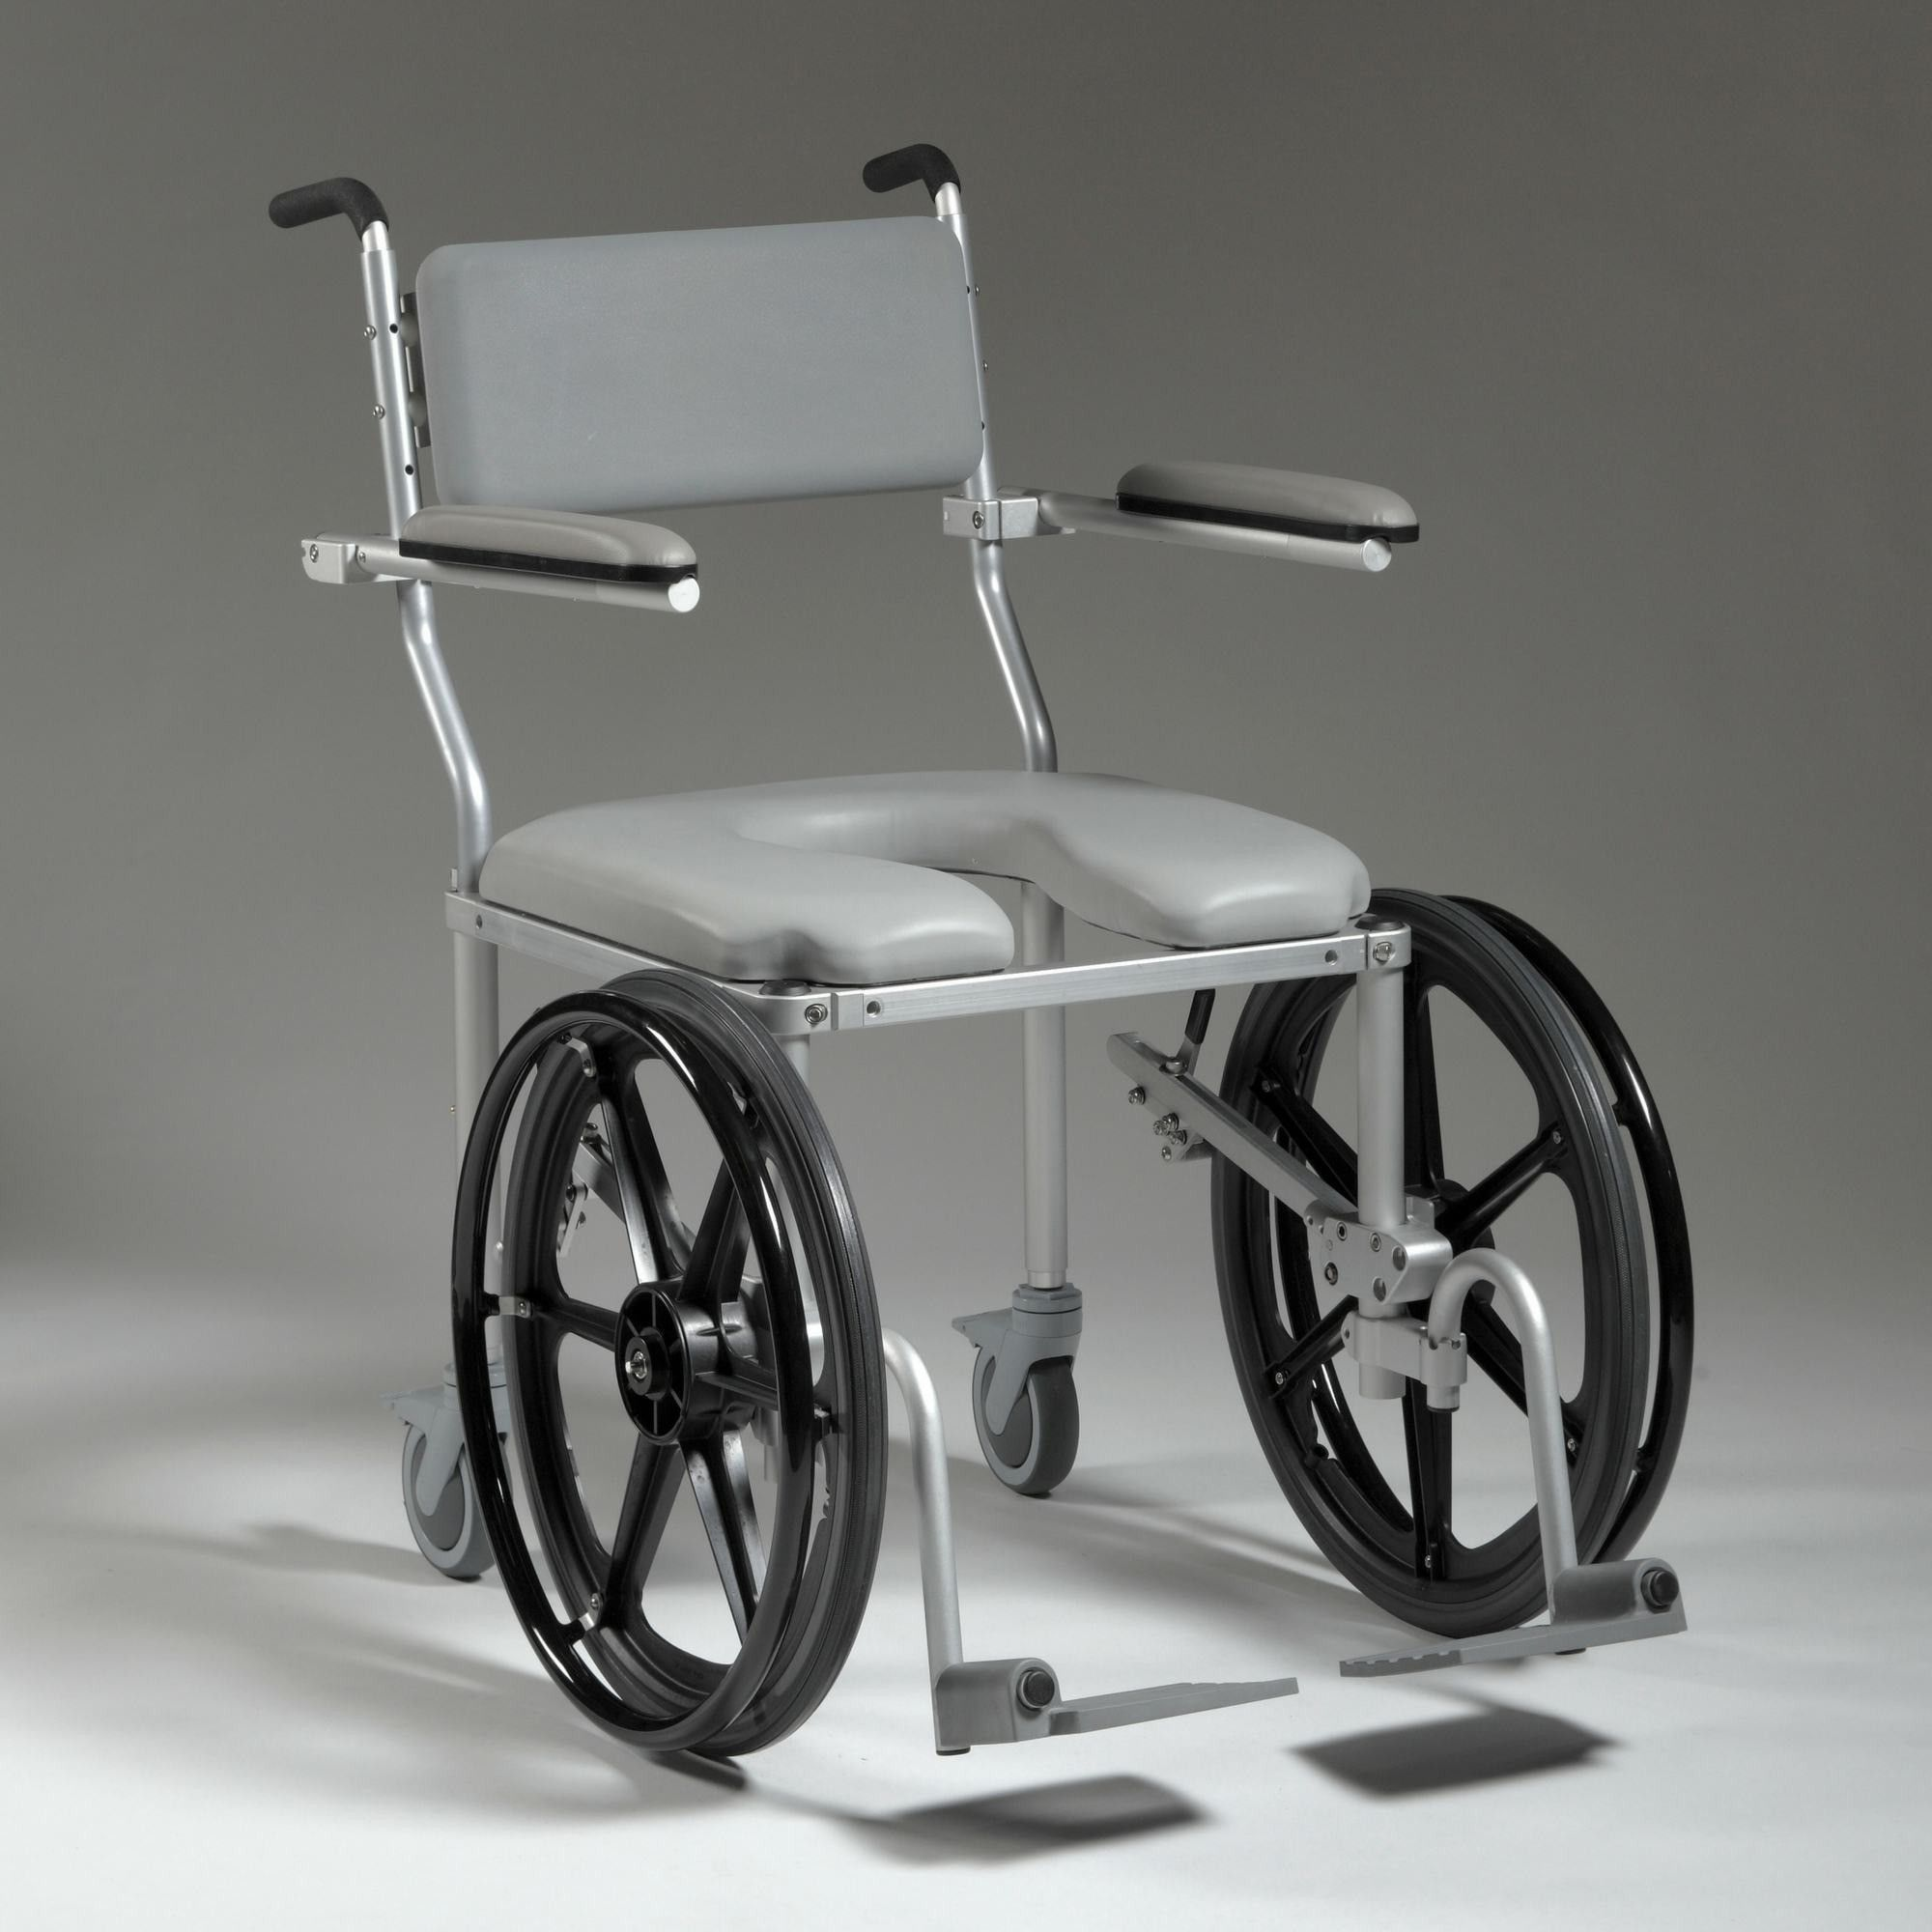 Multichair 4220rx Over The Toilet Commode Chair By Nuprodx Toilet Commode Commode Chair Commode